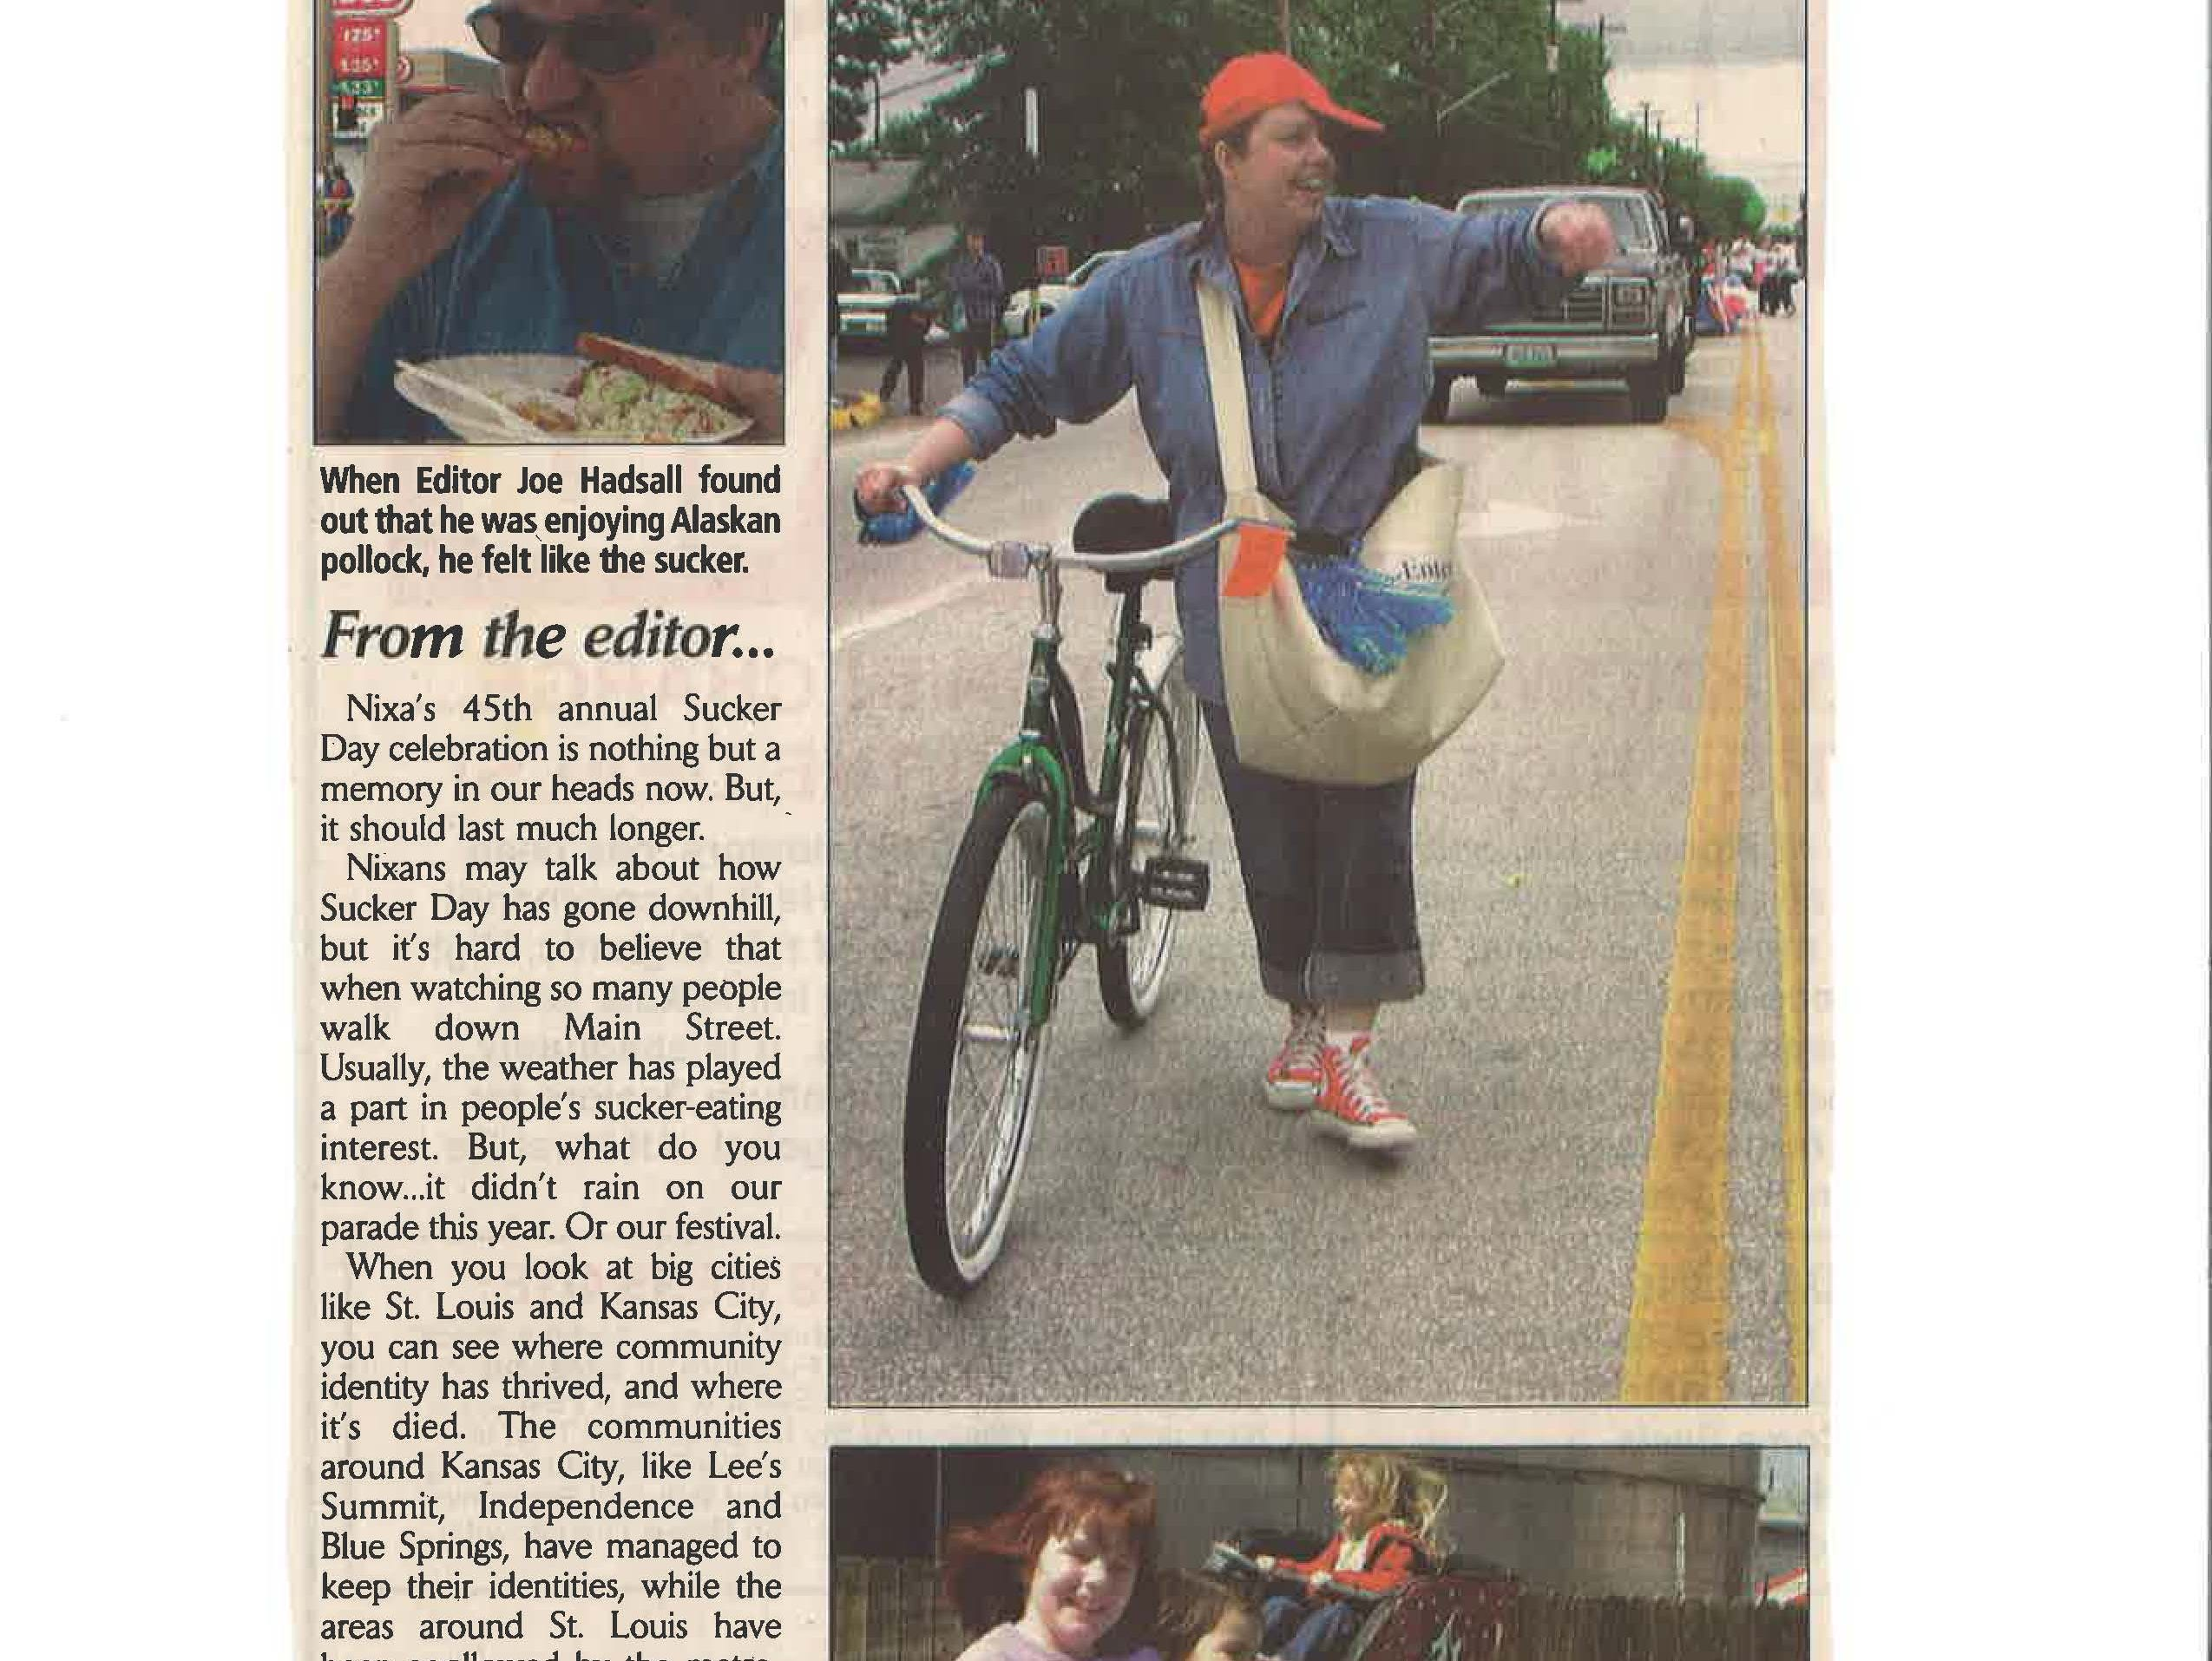 A Sucker Day news clipping from 2002.  From the city of Nixa's collection of vintage Sucker Days photos